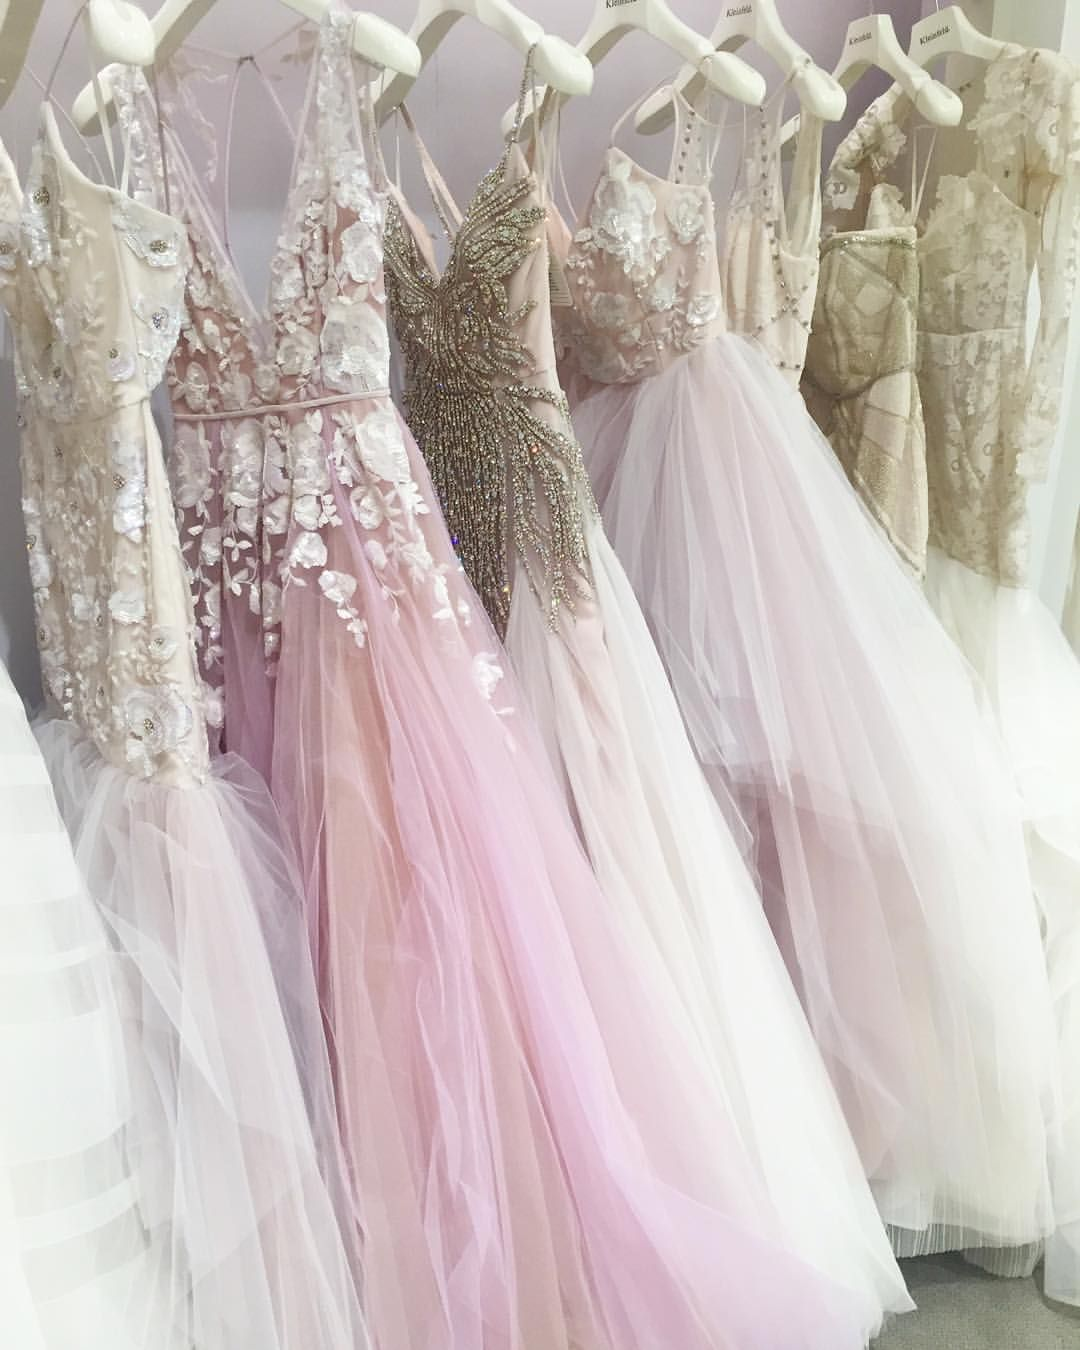 Kleinfeld bridal en instagram ucwant to know facts about